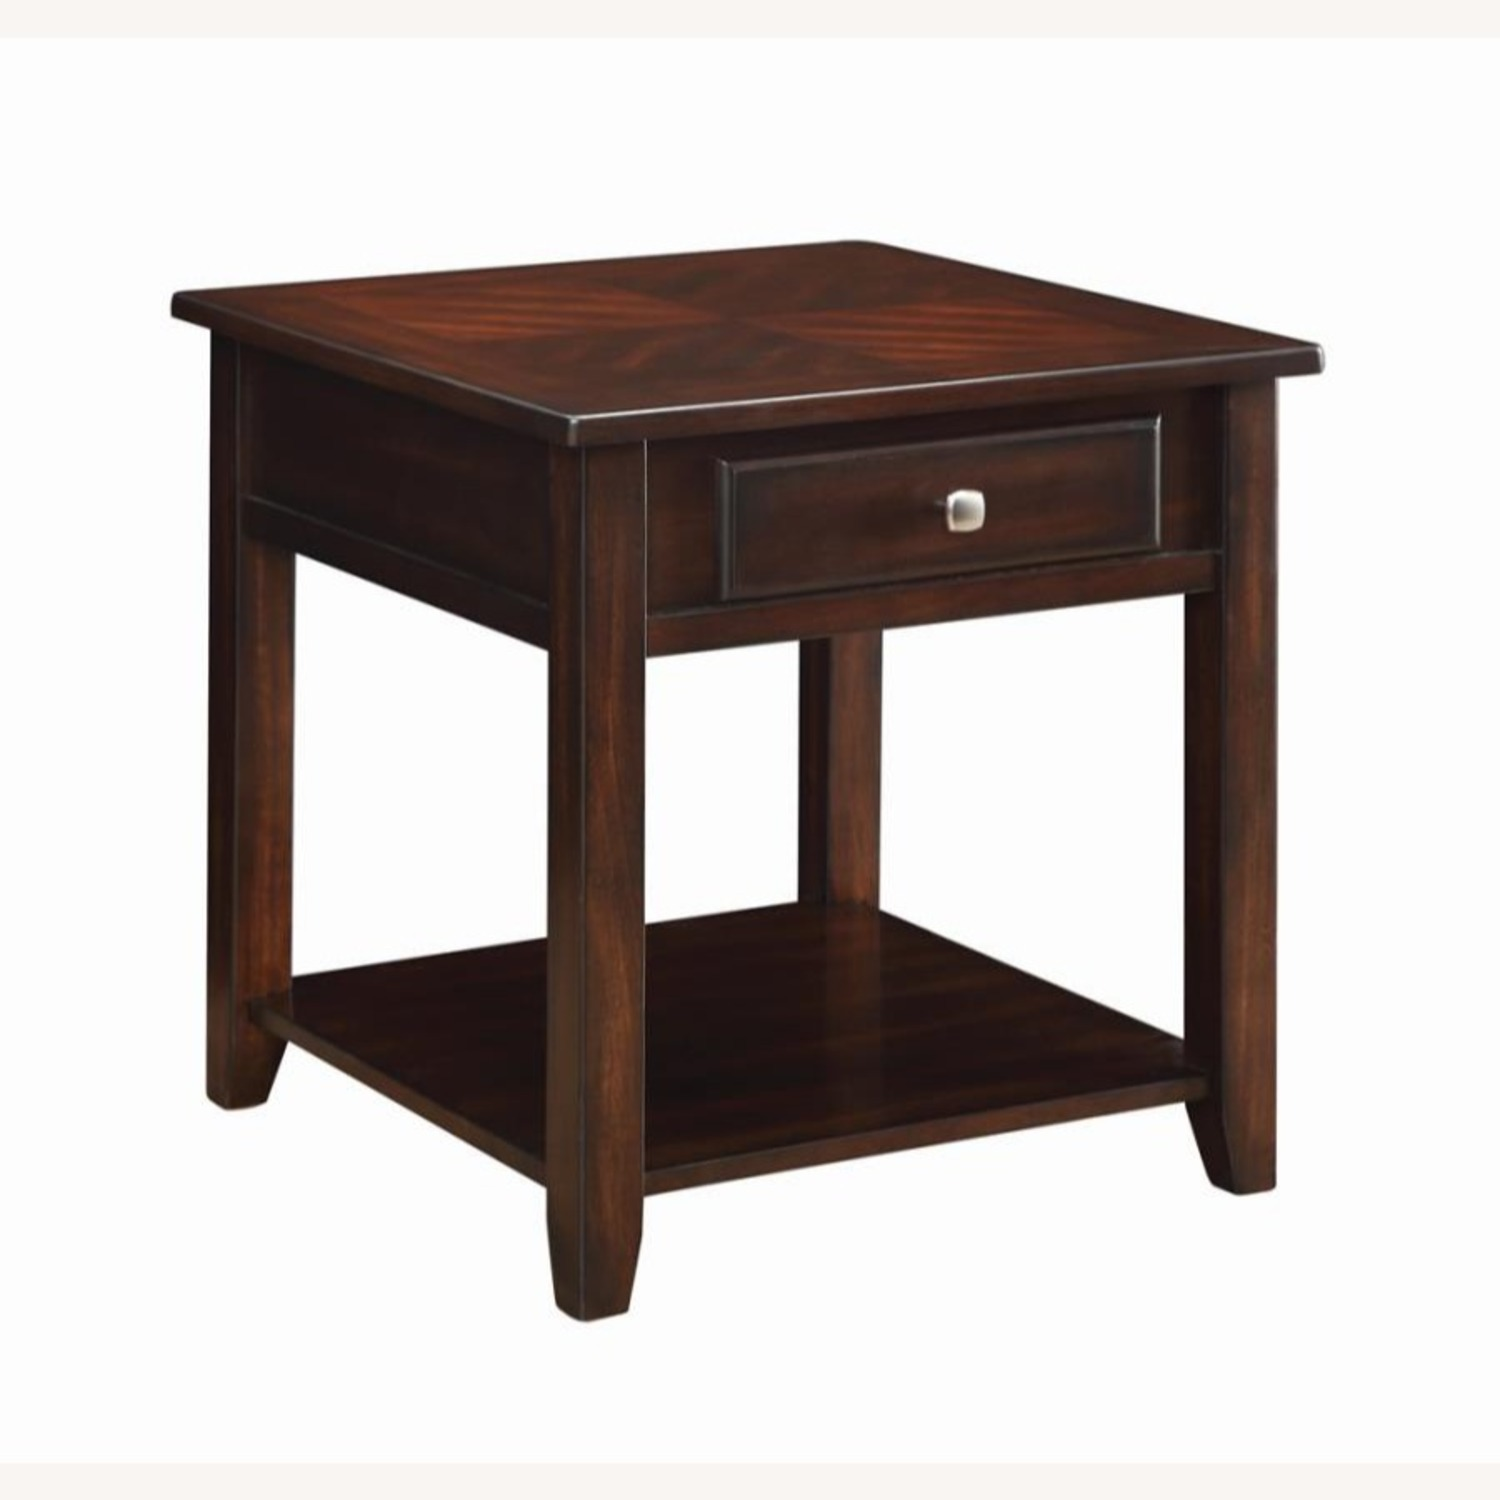 End Table In A Rich Warm Walnut Finish - image-0